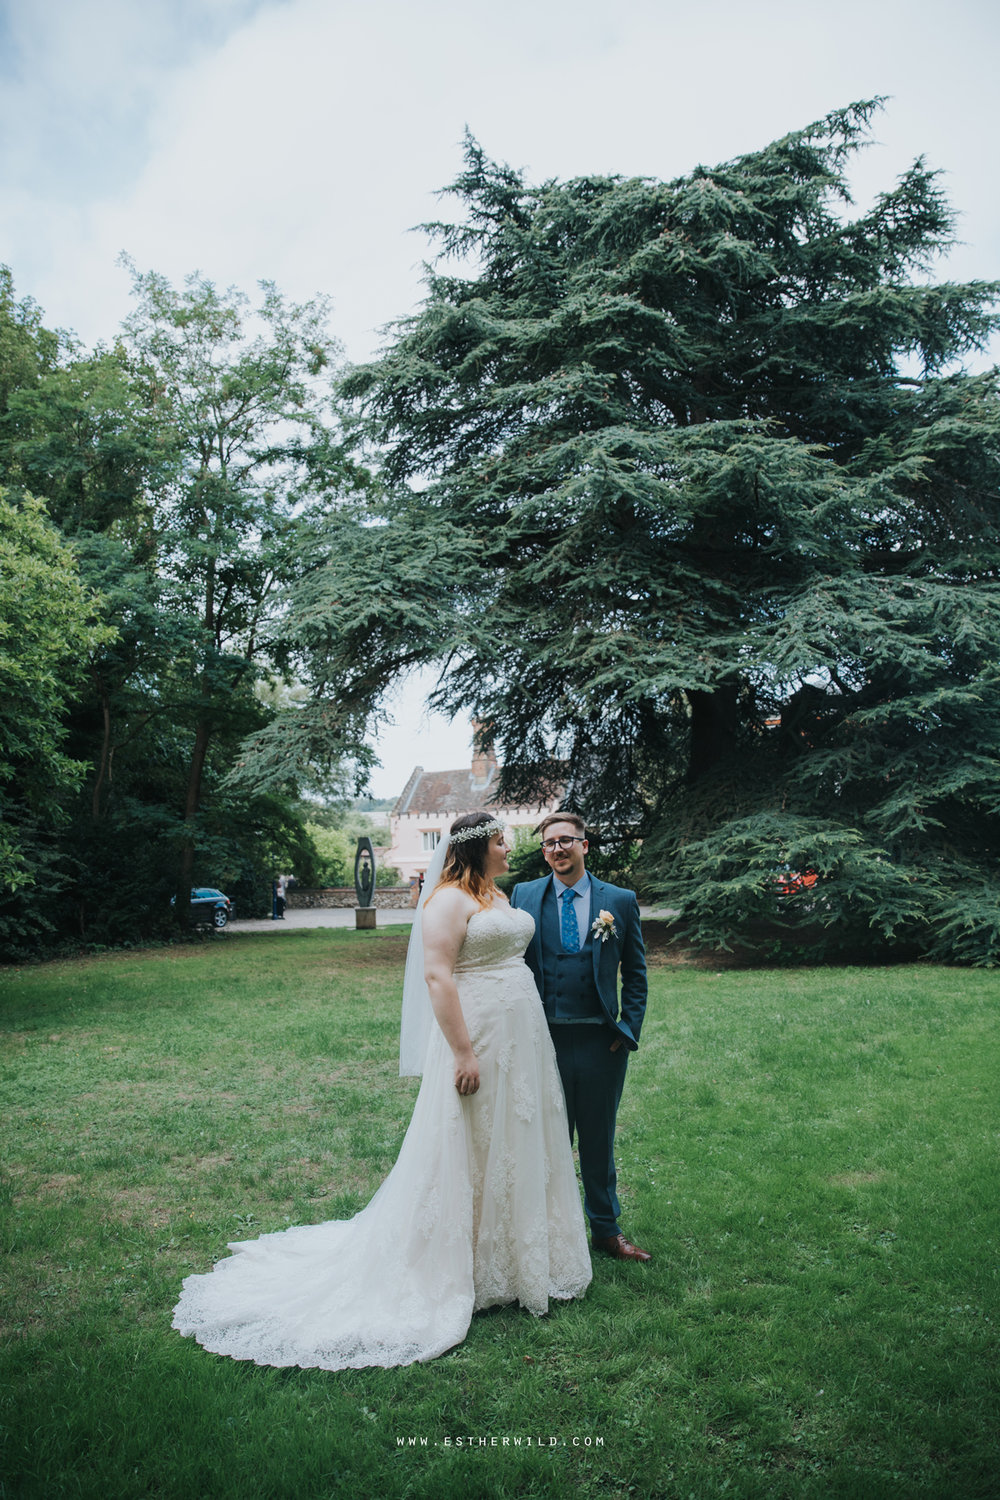 Norwich_Castle_Arcade_Grosvenor_Chip_Birdcage_Cathedral_Cloisters_Refectory_Wedding_Photography_Esther_Wild_Photographer_Norfolk_Kings_Lynn_3R8A1913.jpg